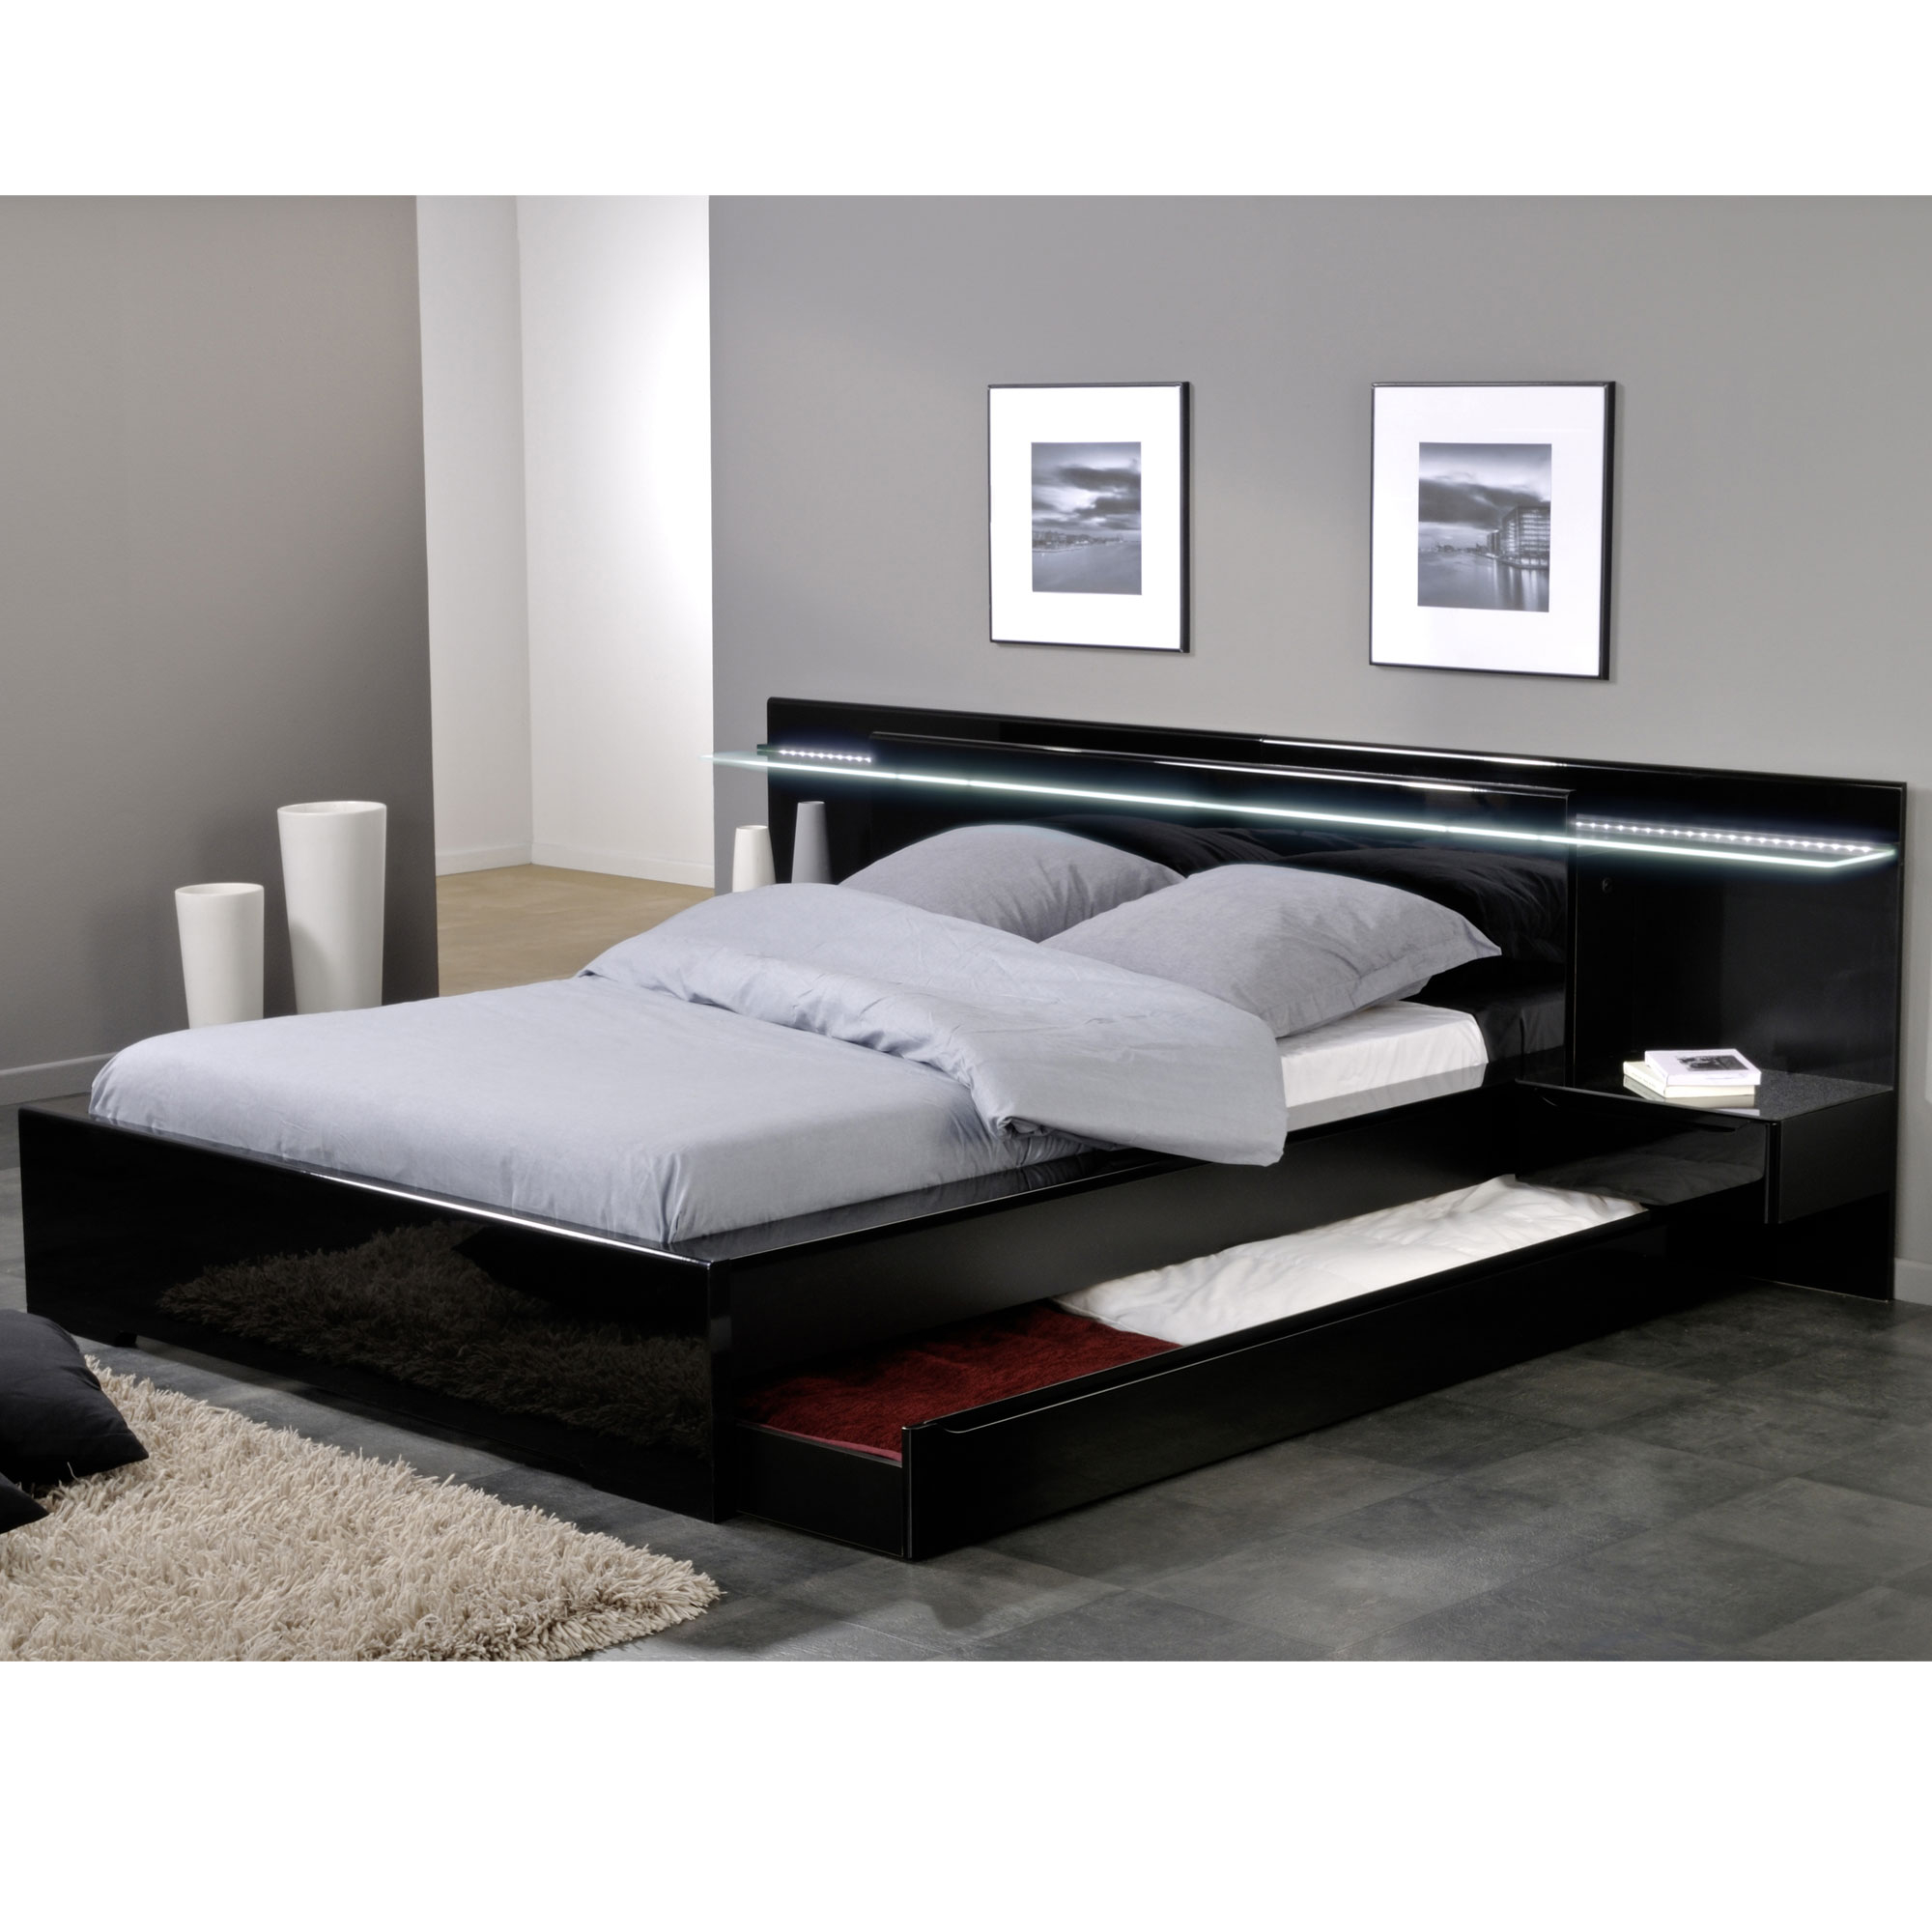 ensemble lit 140 x 190 cm environnement lumineux avec 2 chevets int gr s amber laqu noir. Black Bedroom Furniture Sets. Home Design Ideas